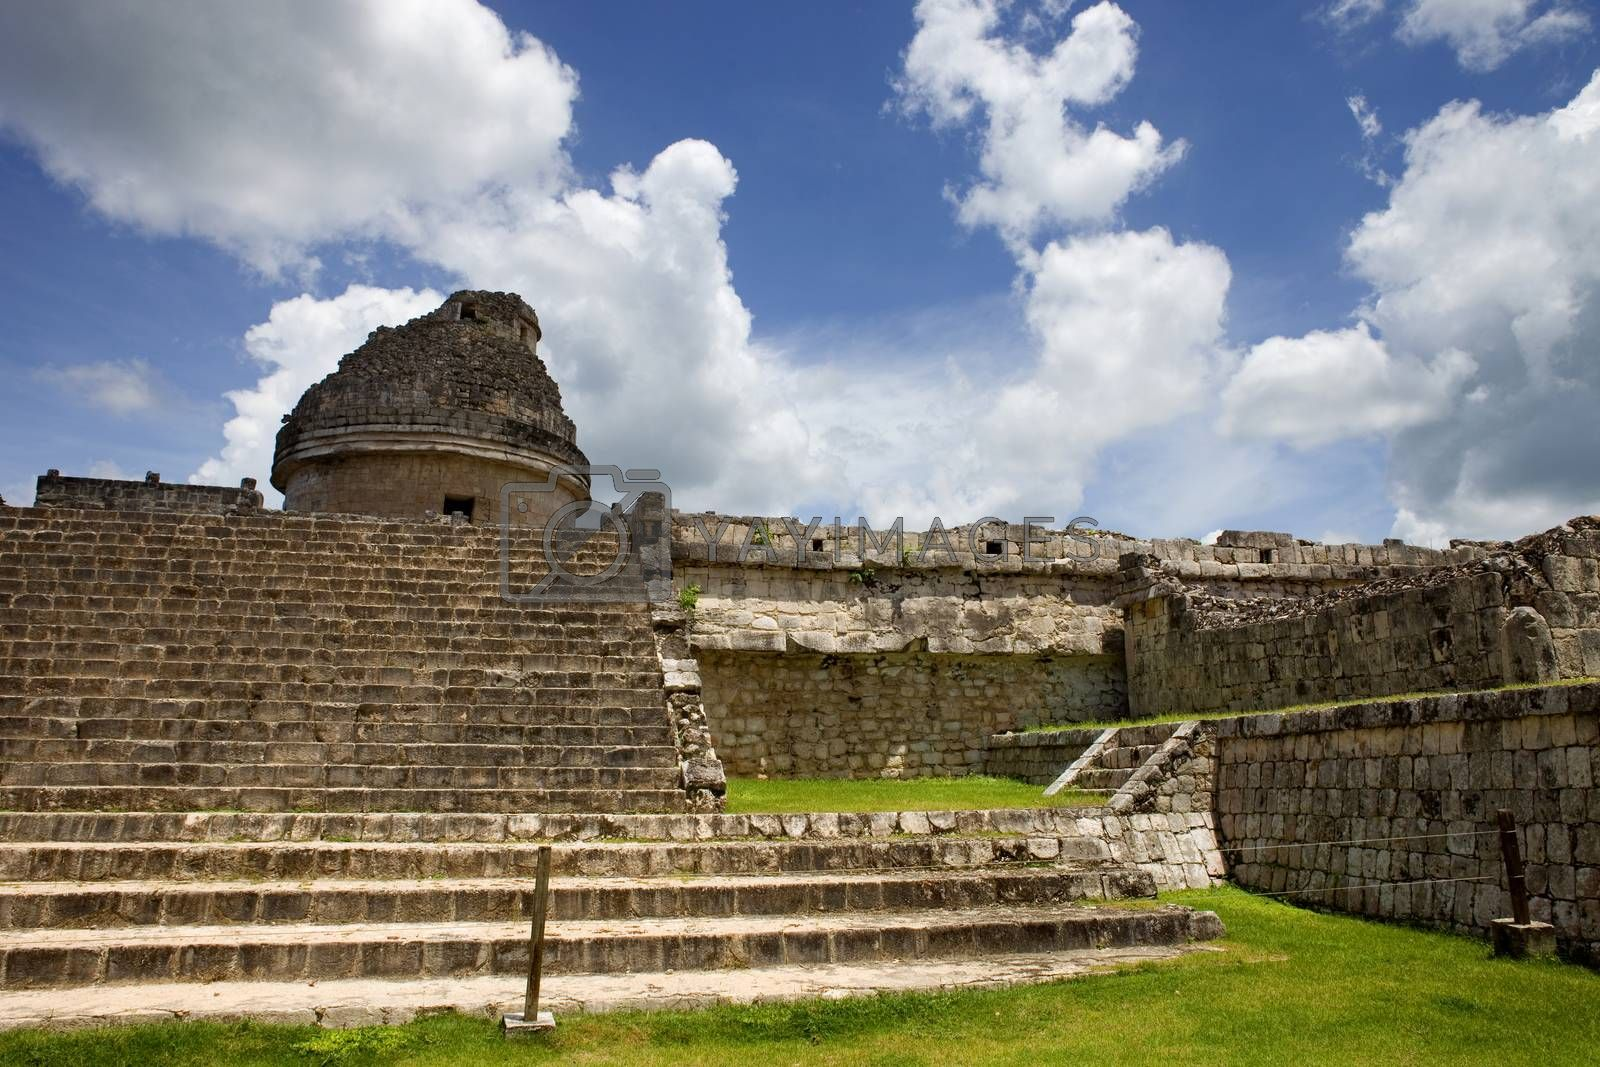 Royalty free image of Chichen Itza by zittto